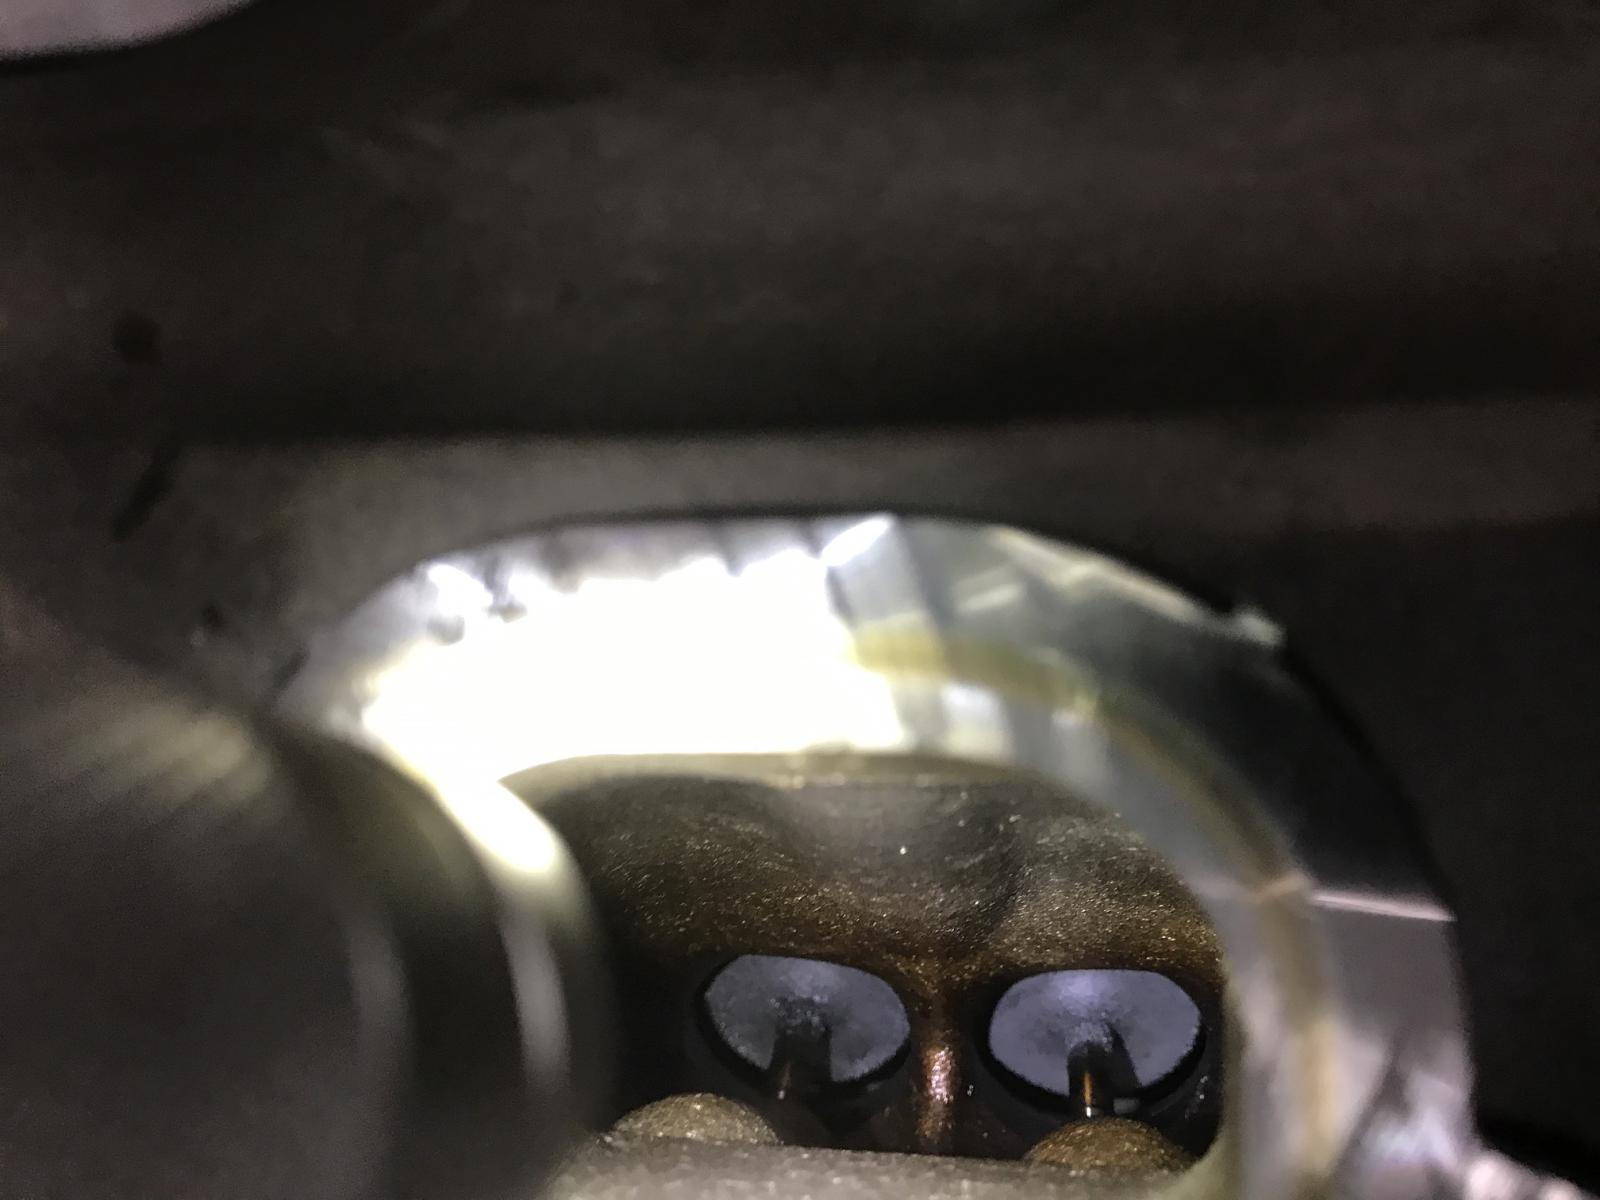 Intake valve cleaning with pics | Page 2 | Chevy Colorado